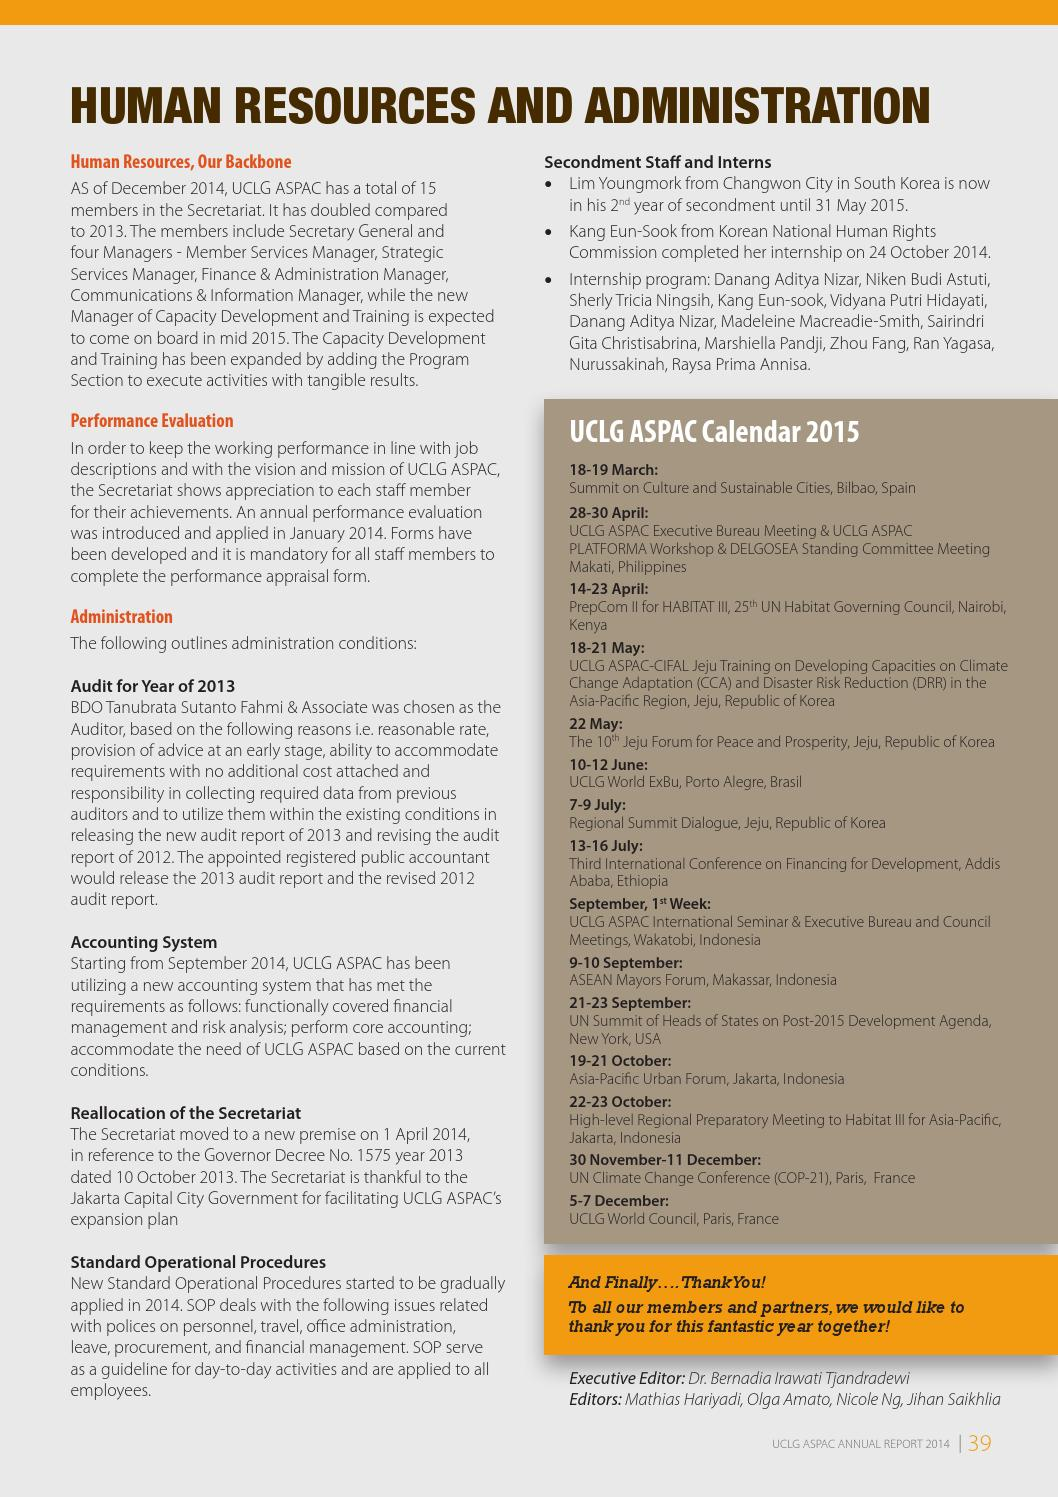 UCLG ASPAC Annual Report 2014 F By UCLG ASPAC   Issuu